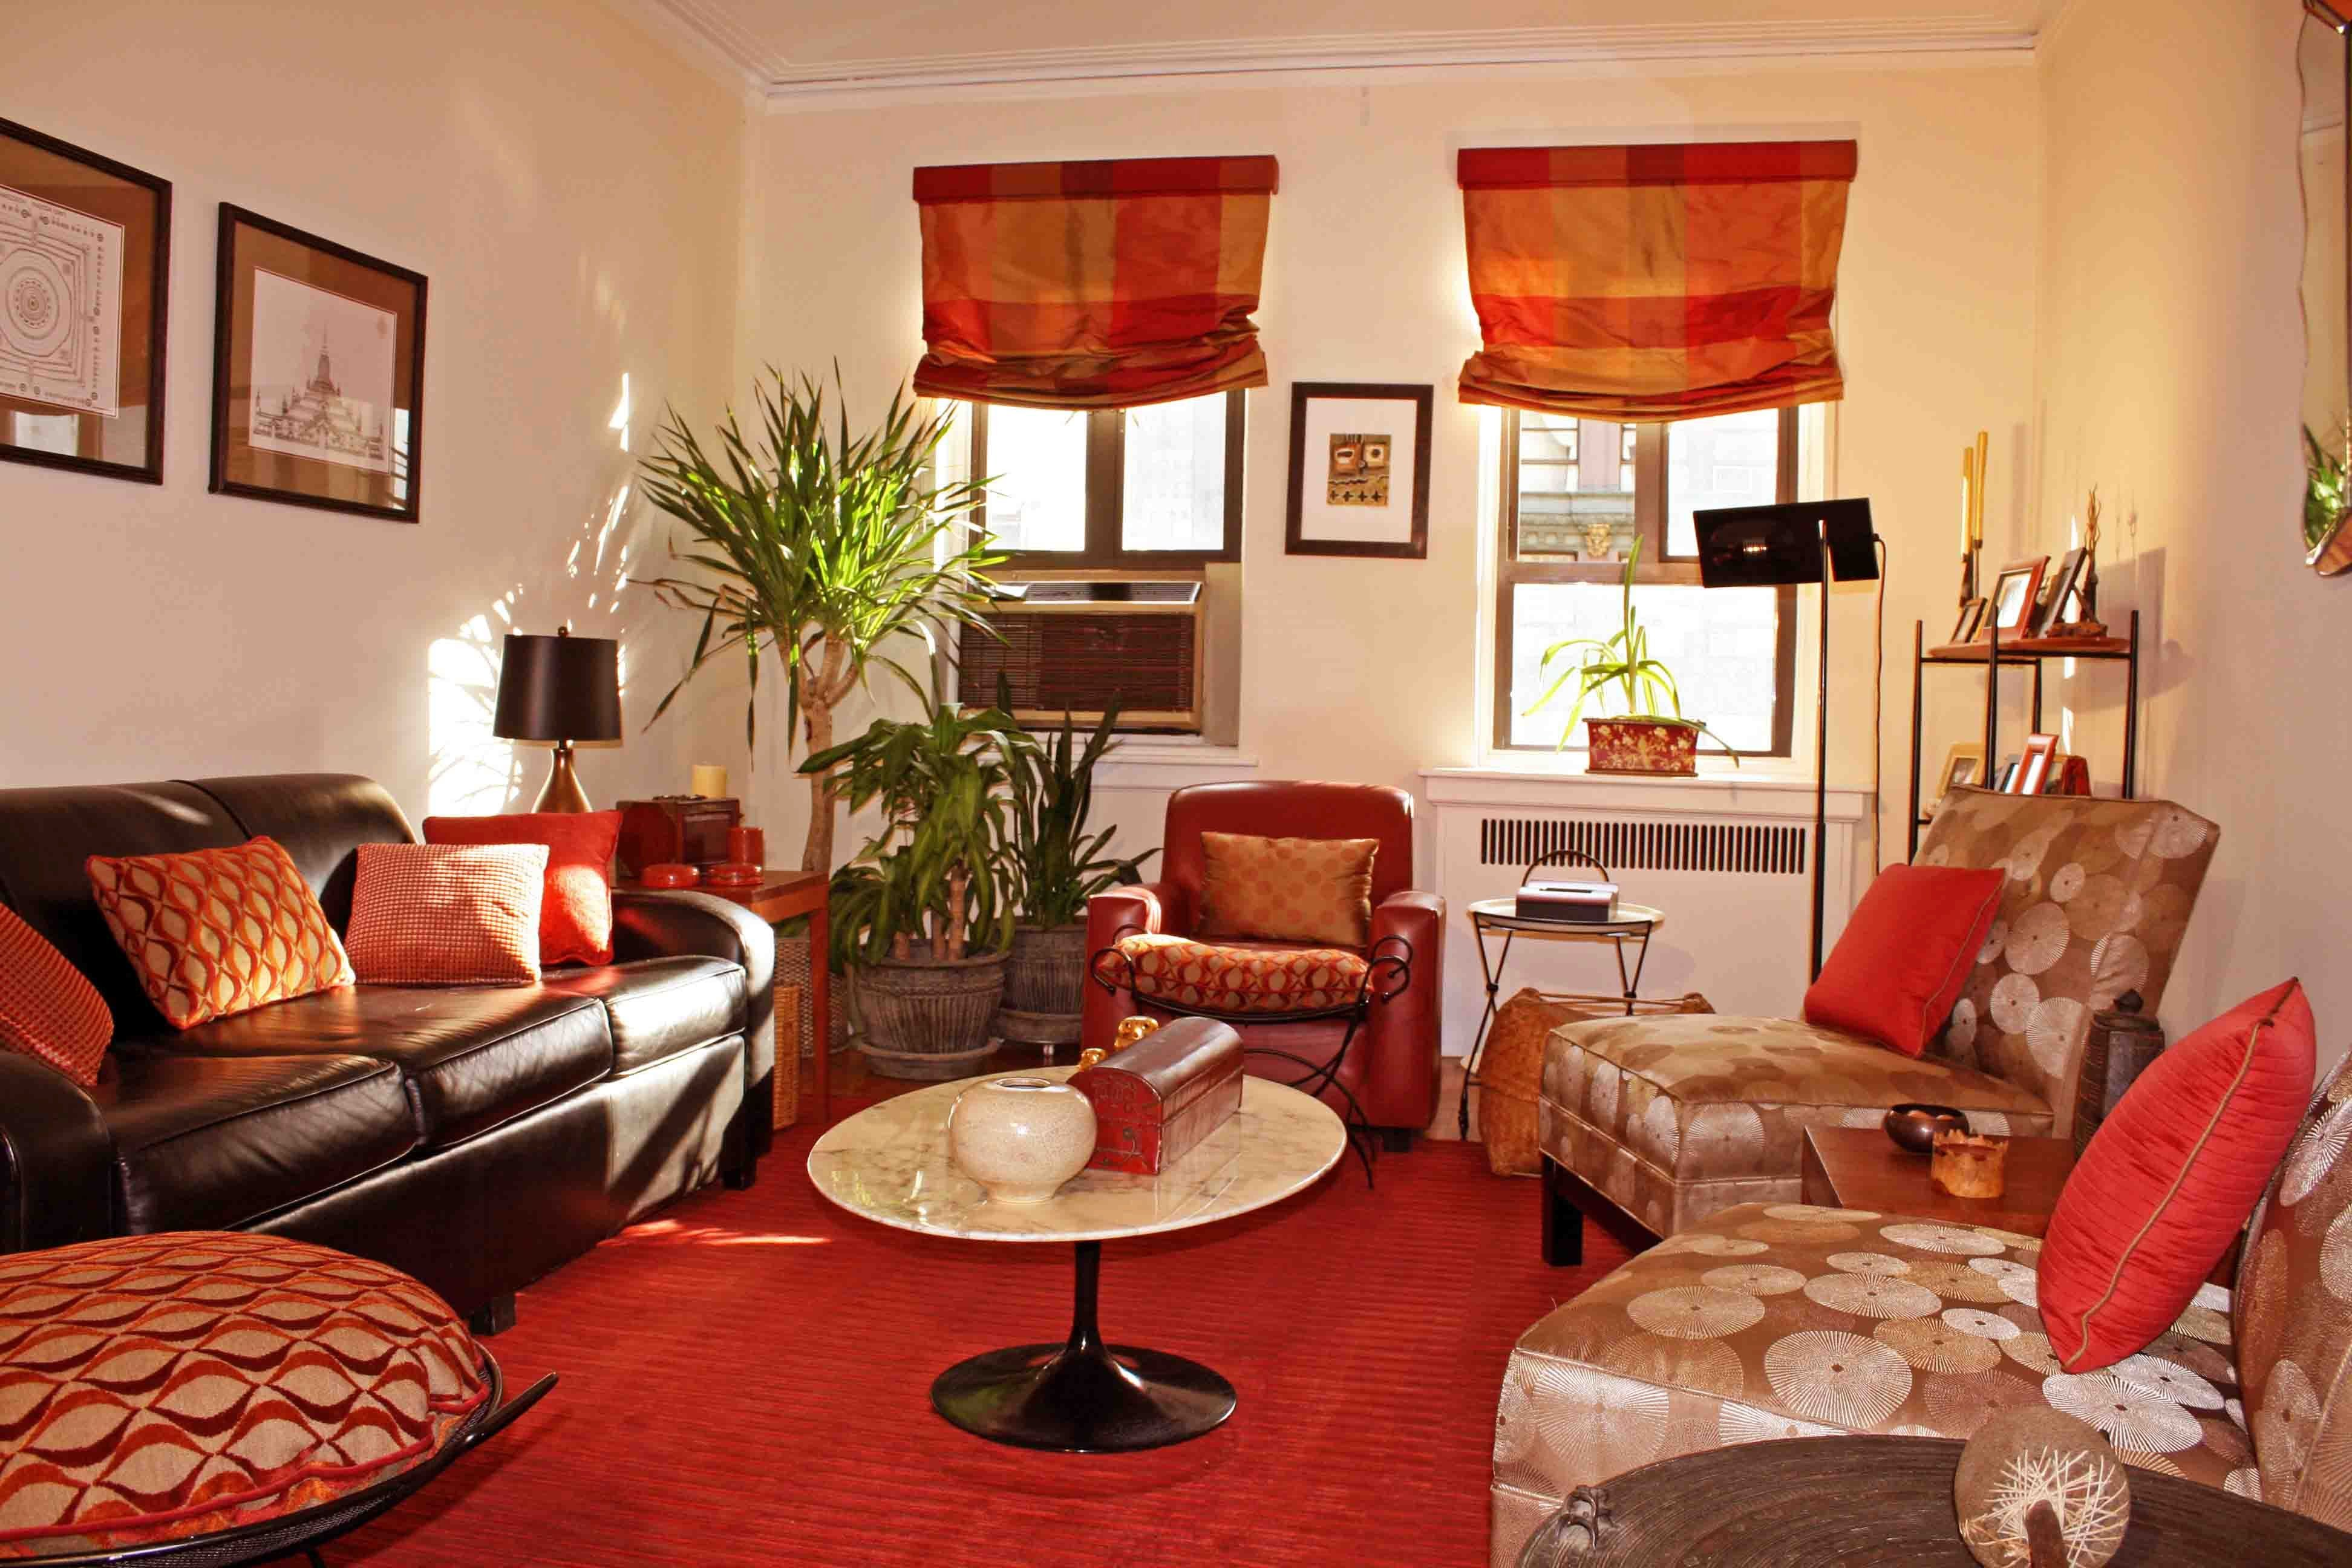 Fascinating Small Living Room Design Ideas With Red Rugs Laminate Floor And Brown Leather Plose Sofa Living Room White Living Room Red Best Living Room Design